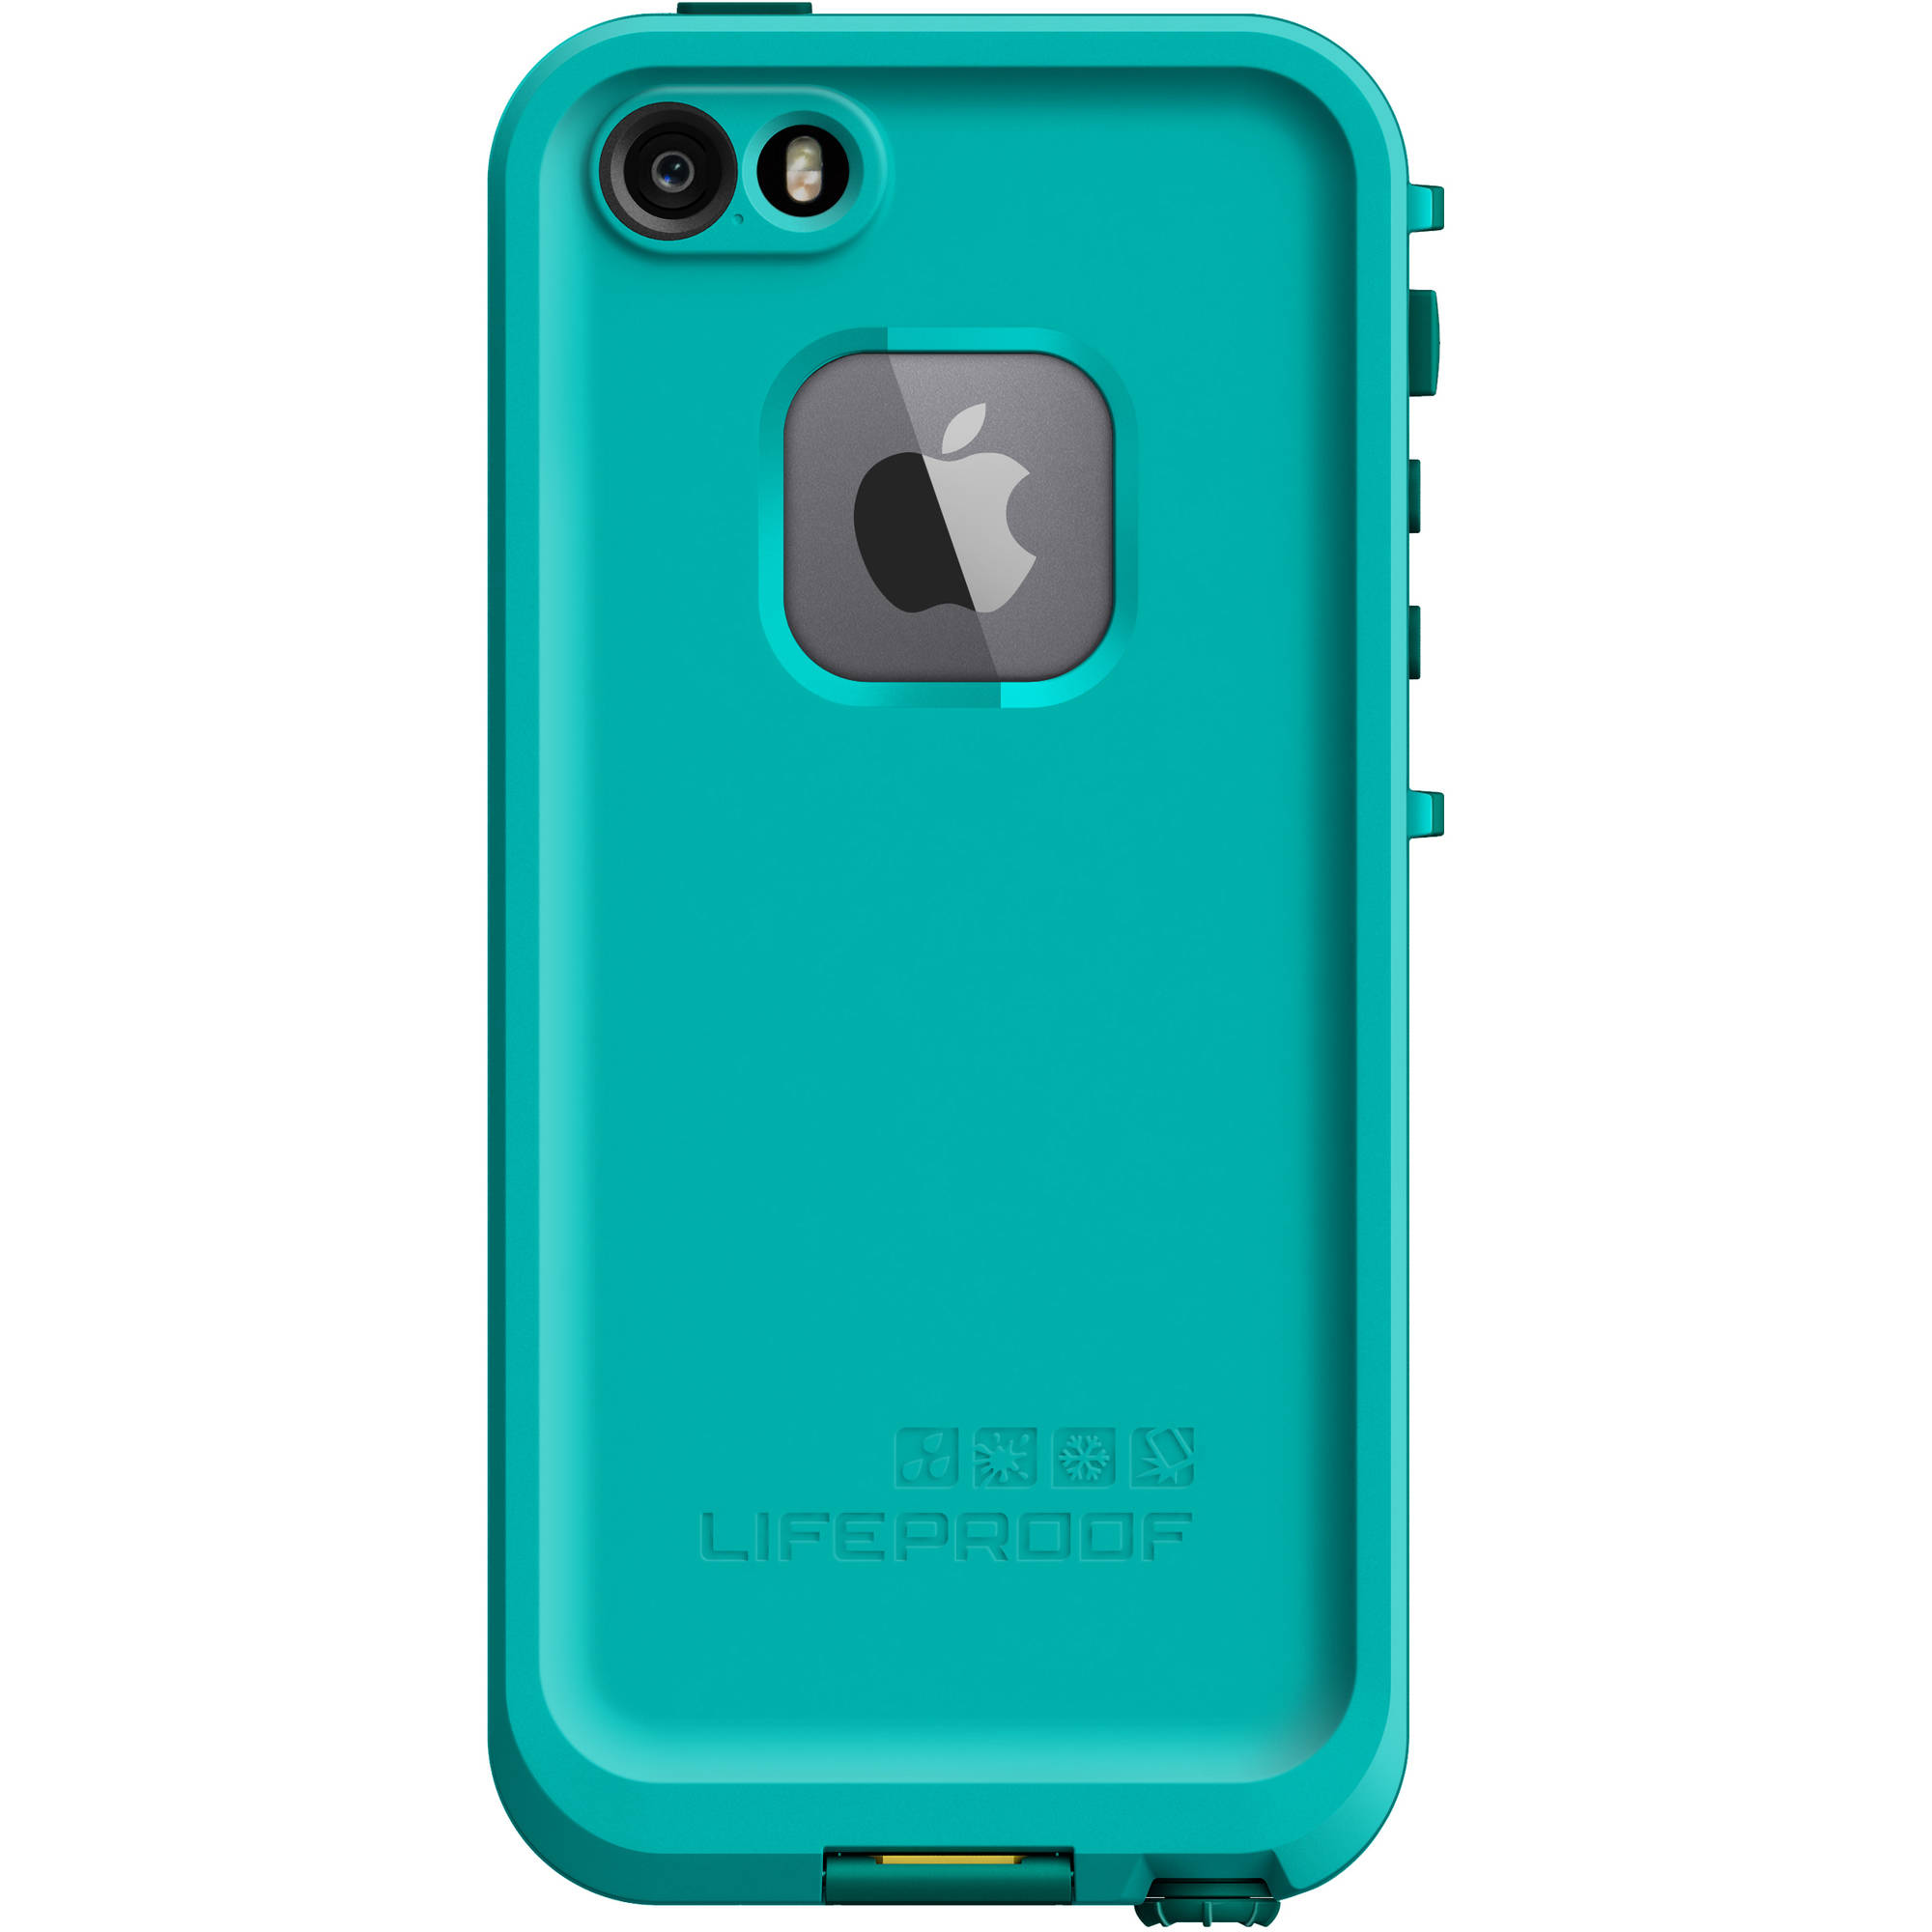 easy-to-read lifeproof case for iphone 5c walmart install update, simply